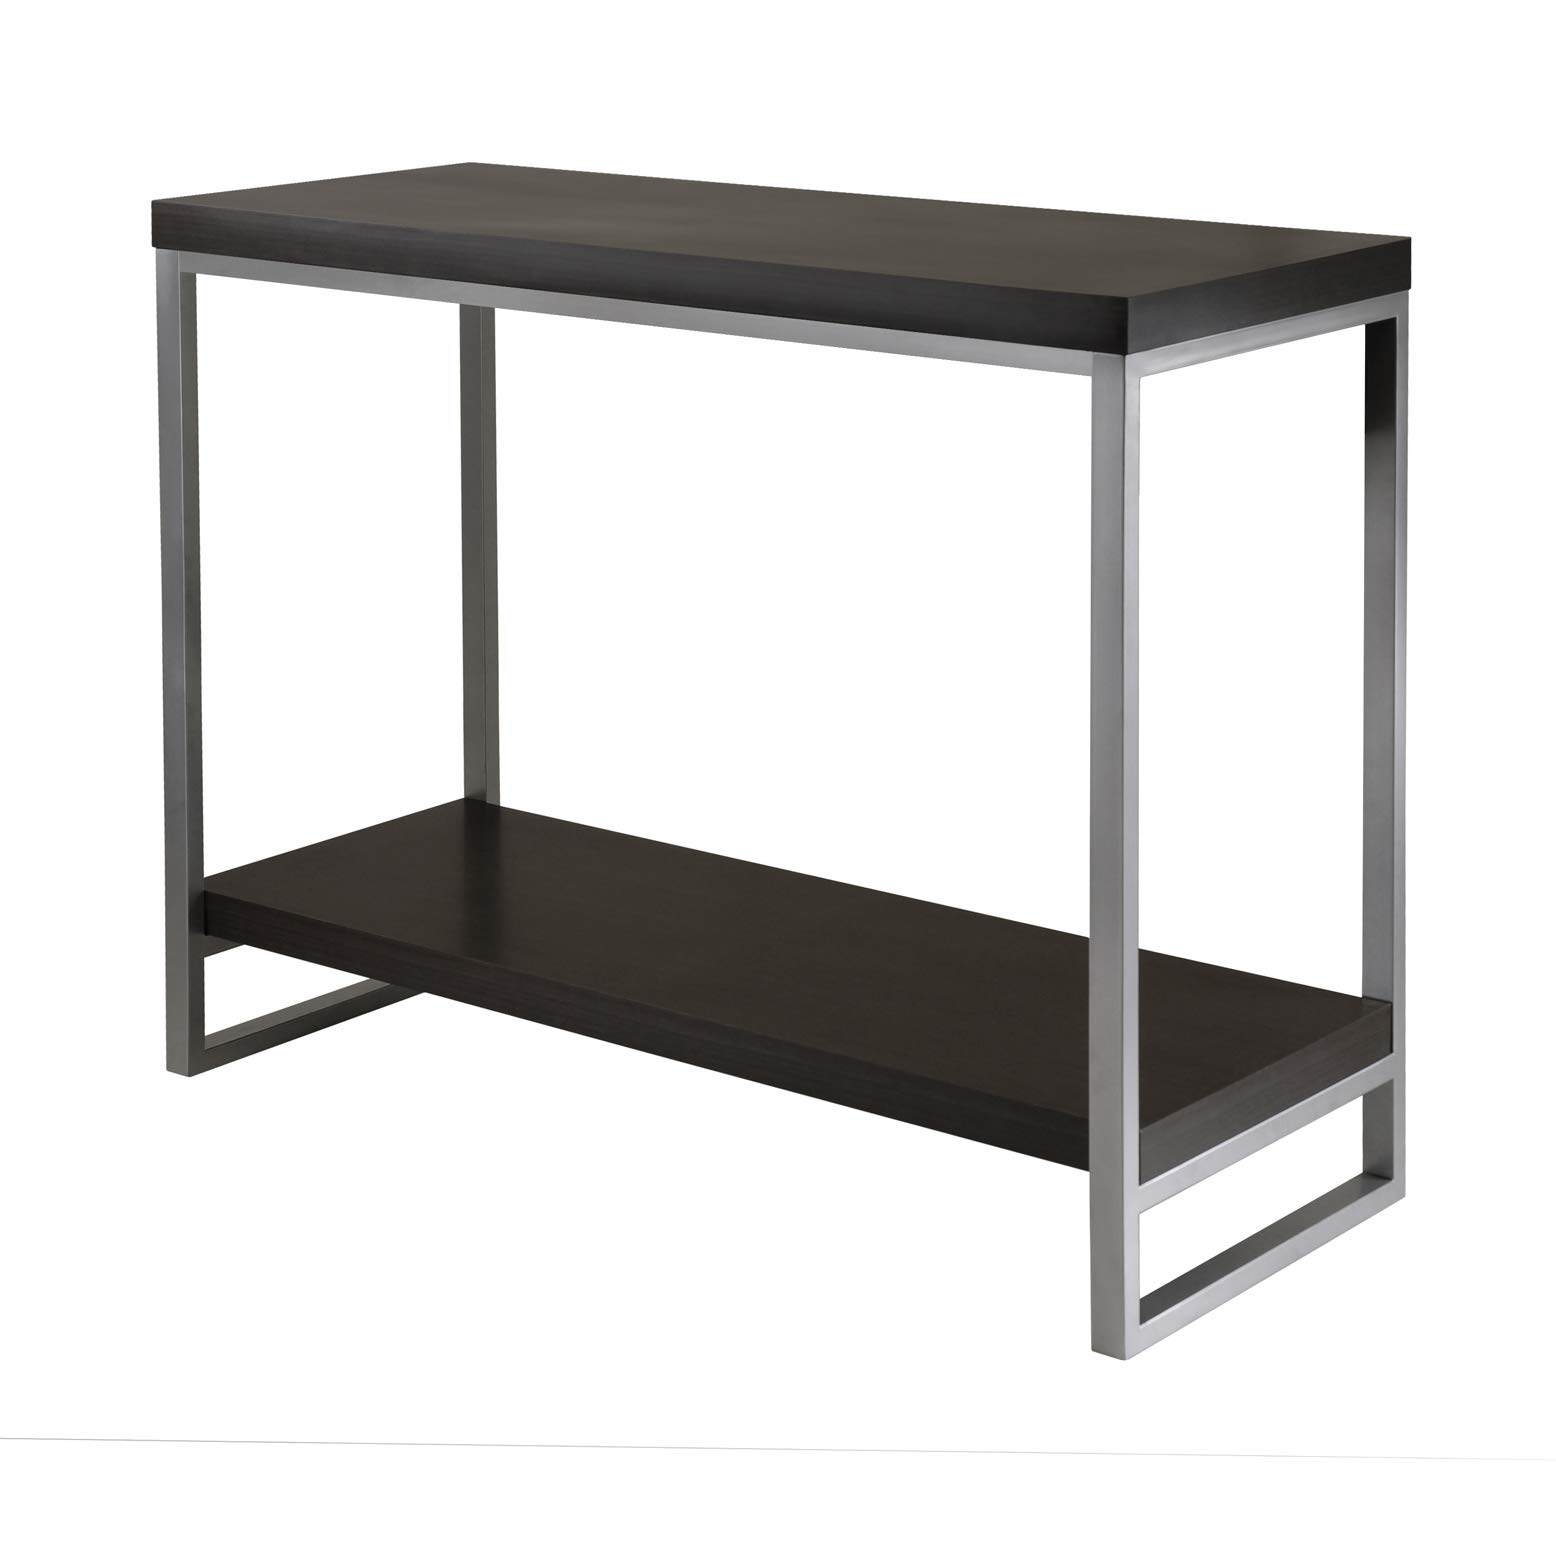 Winsome Wood Jared Console Table, Espresso Finish by Winsome Wood